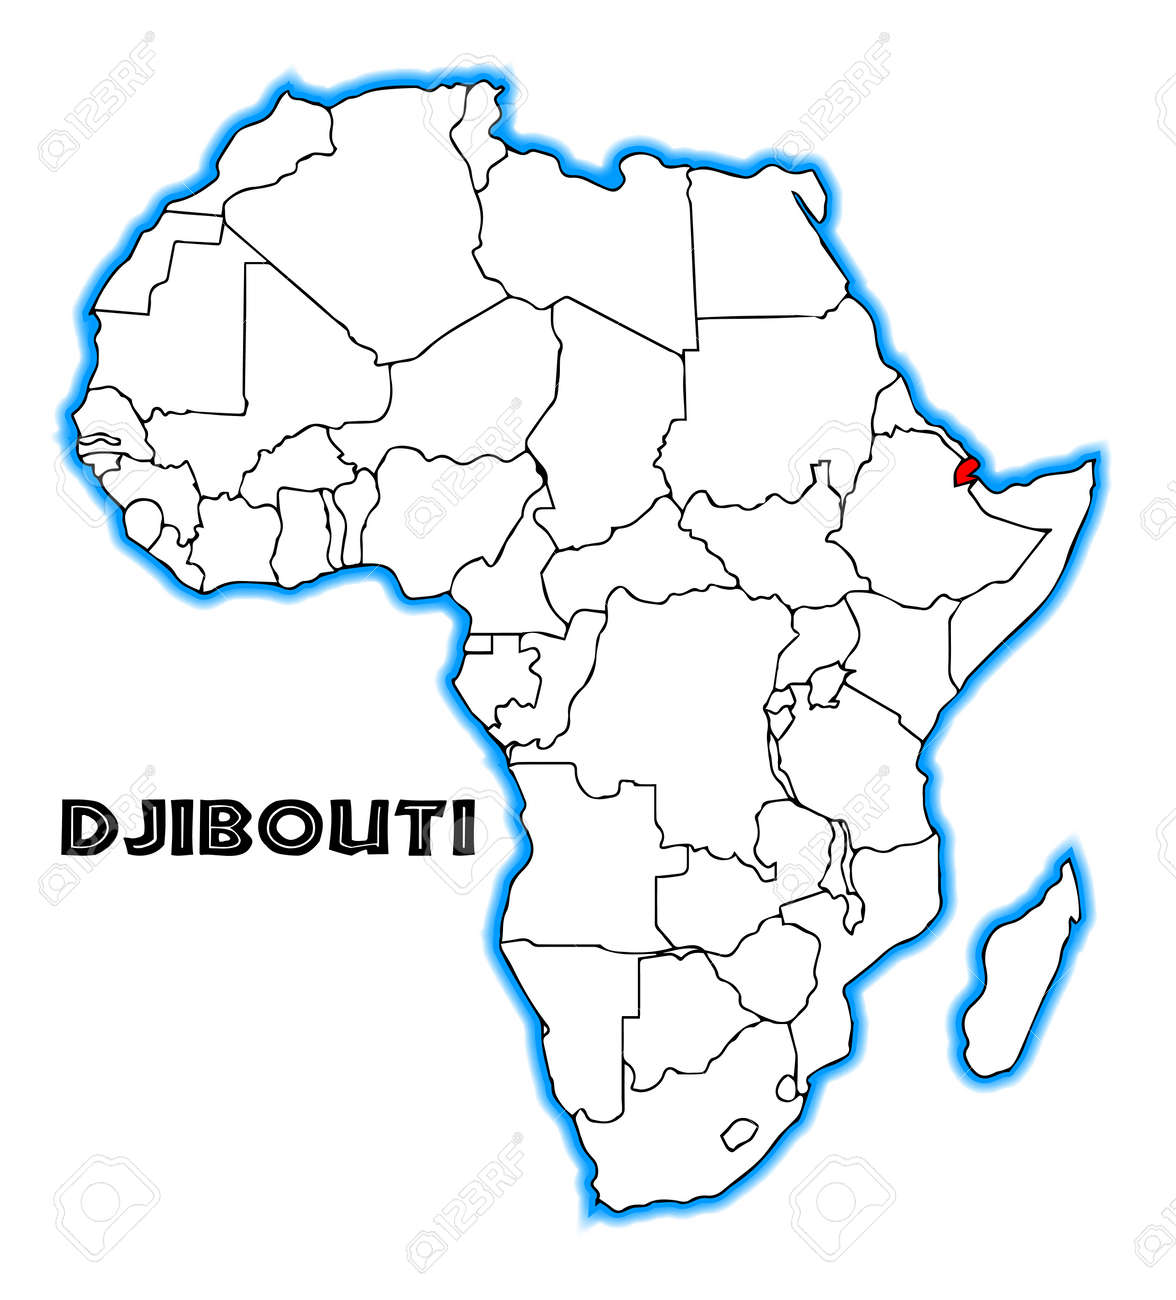 Djibouti outline inset into a map of Africa over a white background